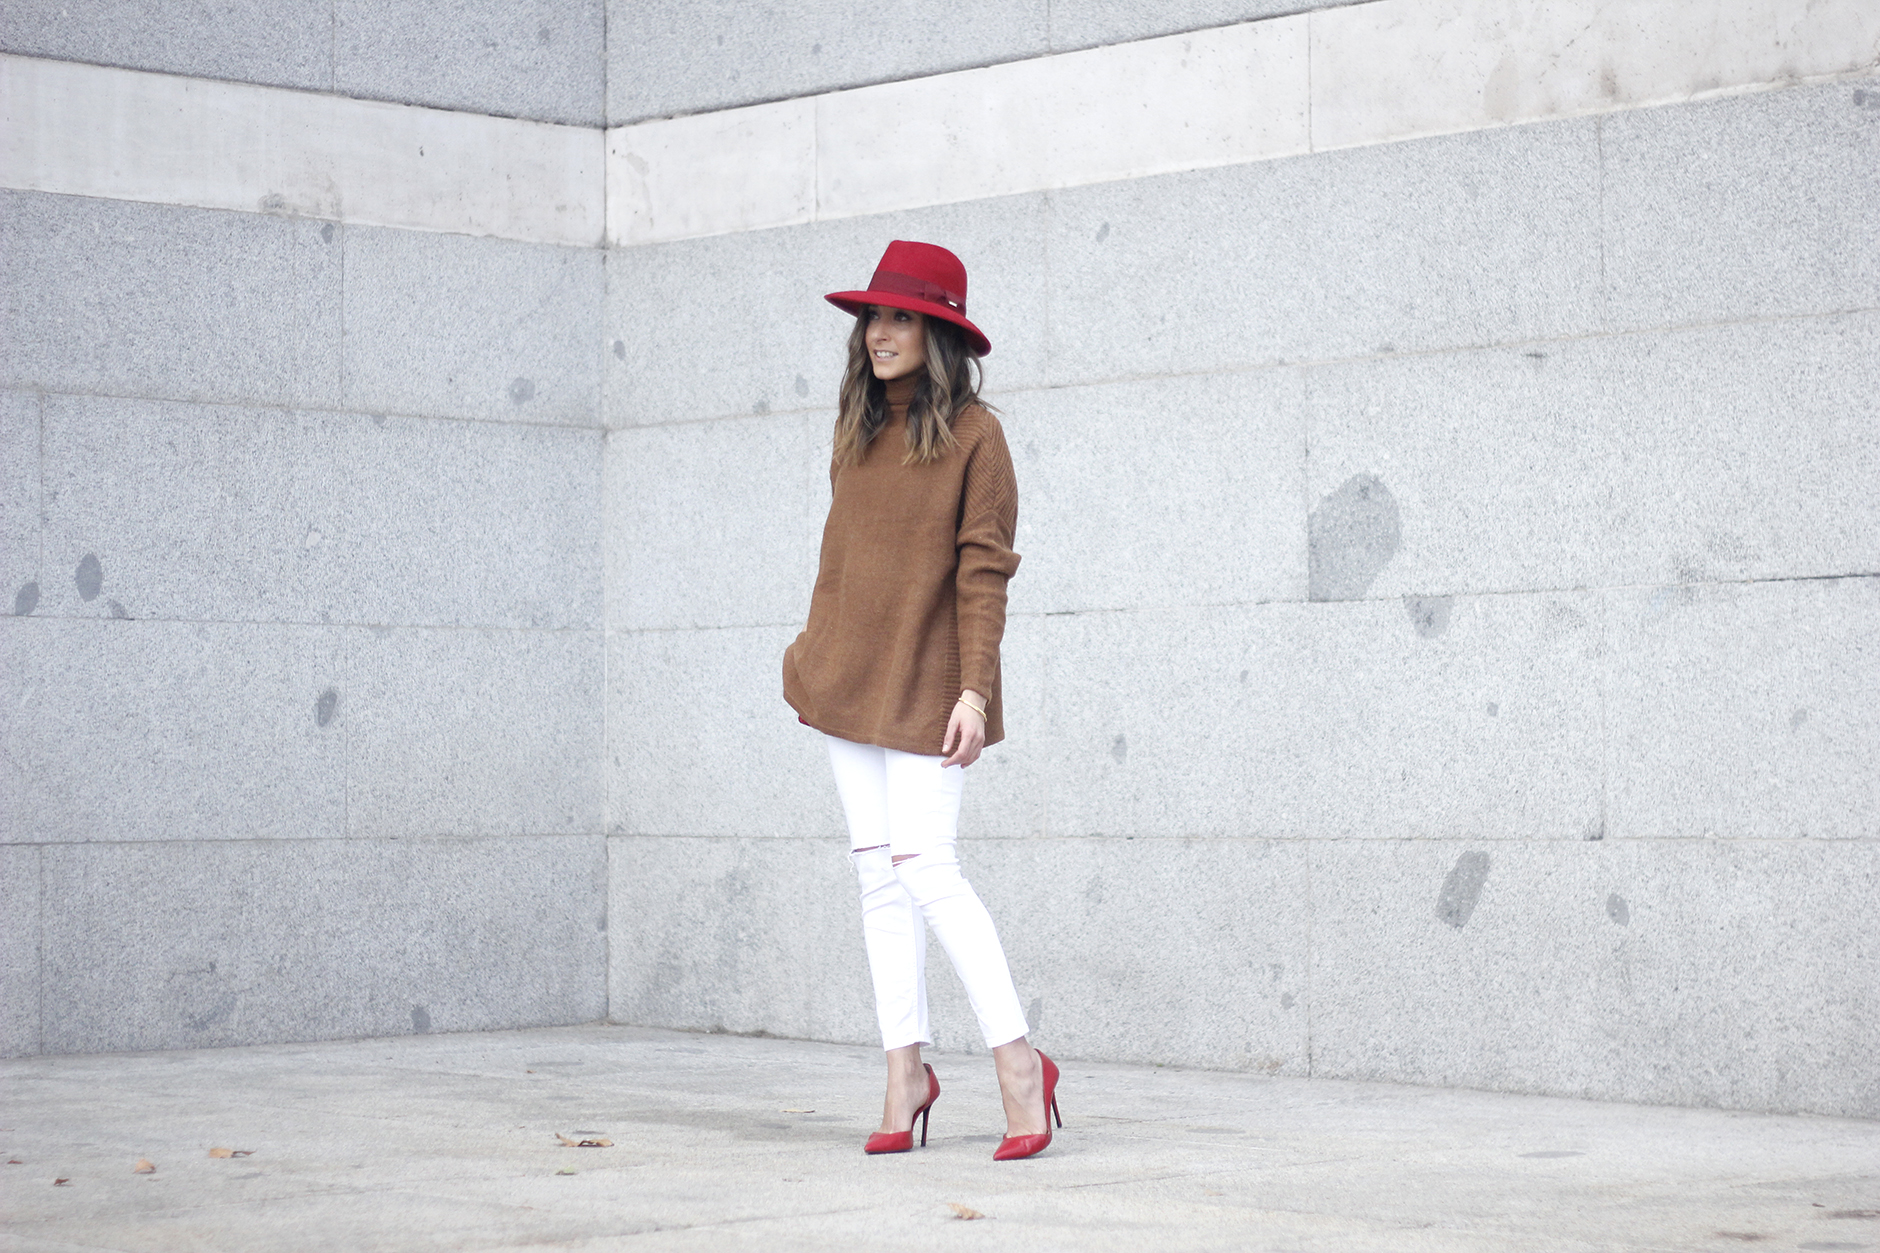 Turtleneck Sweater white jeans red heels red hat uterqüe outfit05